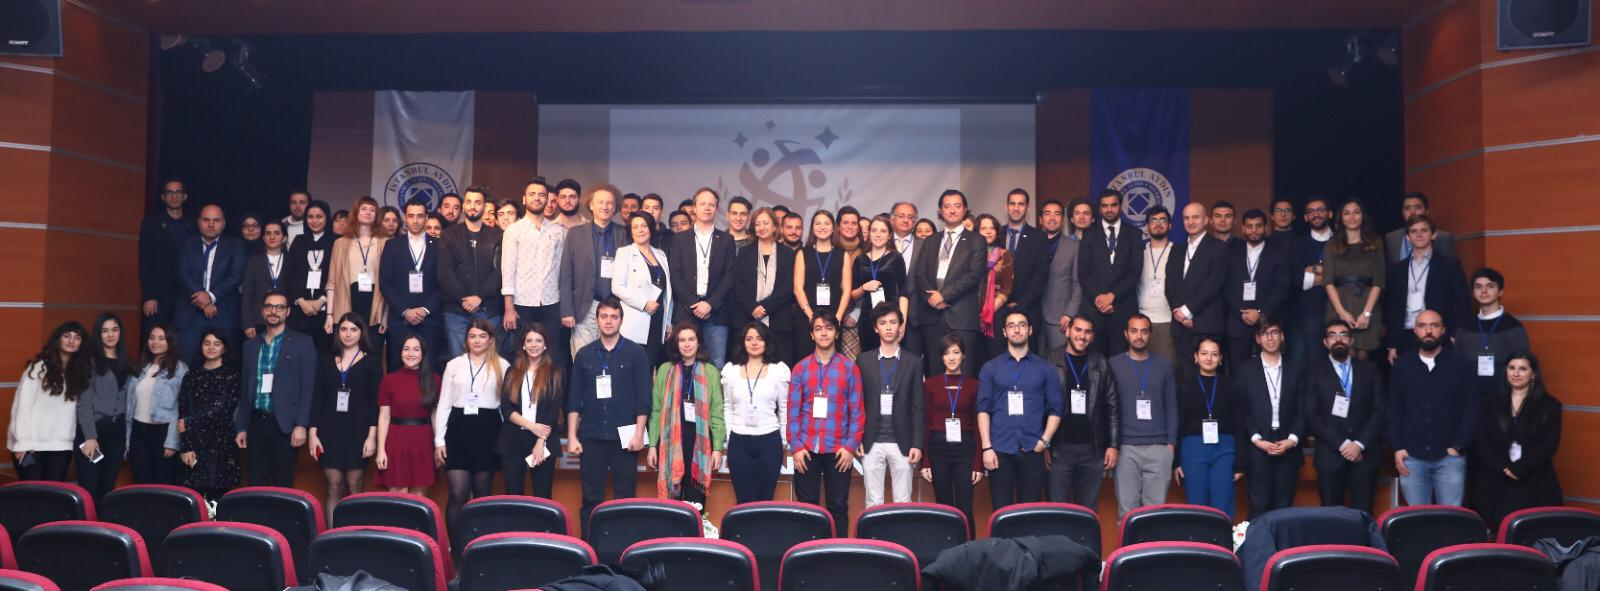 Middle East Space Generation Workshop Group Picture (Dec 2019)